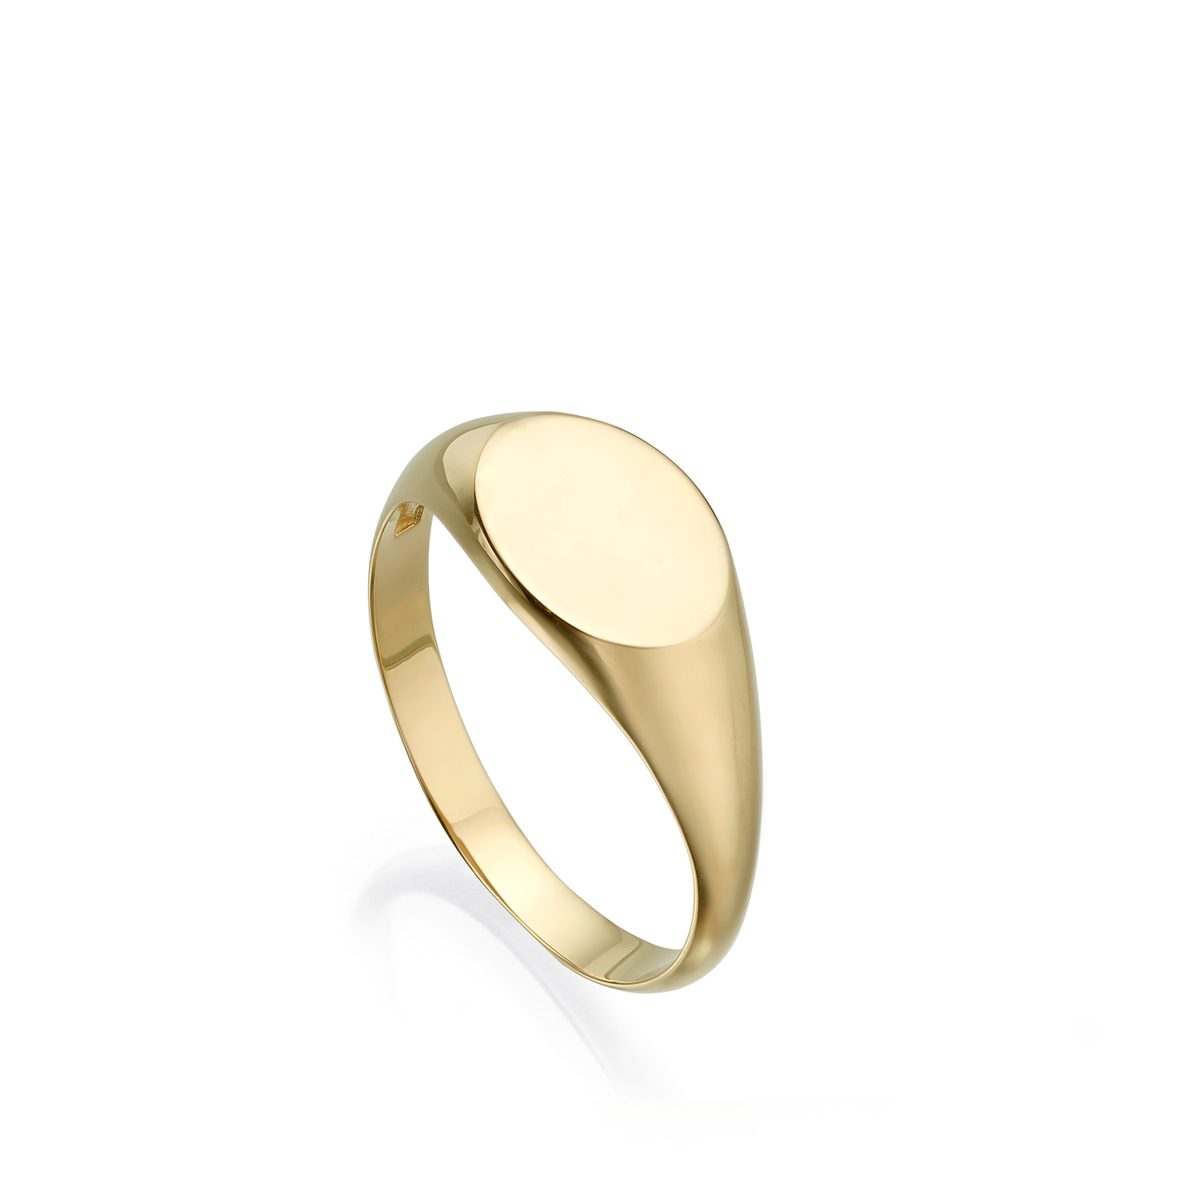 Oval signet gold ring